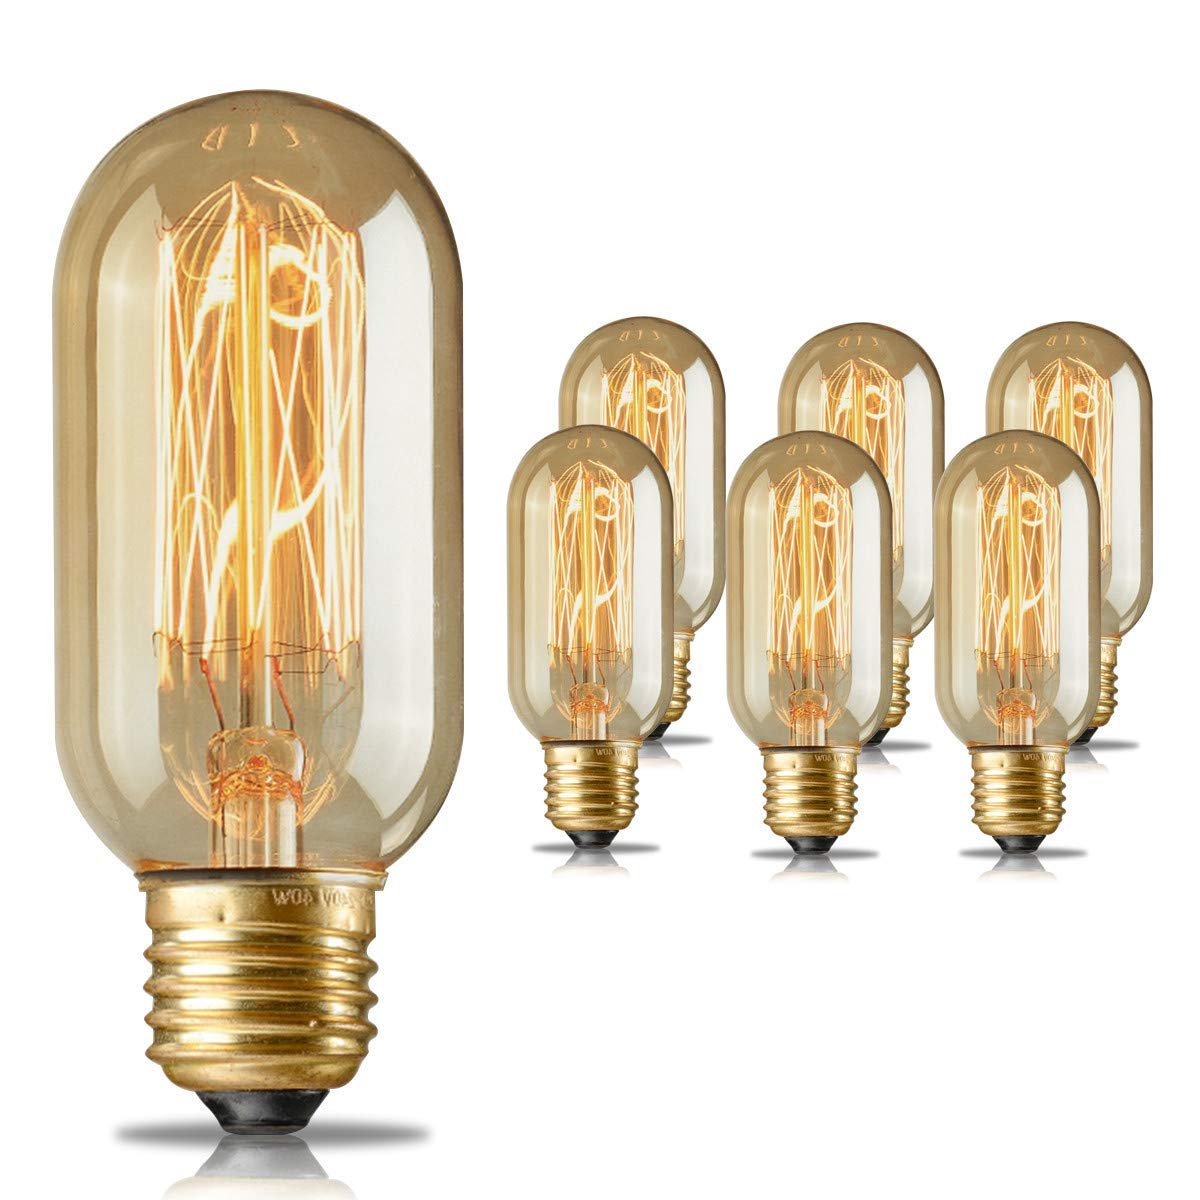 Edison Light Bulbs,HESSION T45 40w Vintage Antique Tungsten Filament Incandescent Bulbs,E26 Base Light Bulbs for Decorative Pendant Lighting Dimmable 110V Amber Glass(6 Pack)